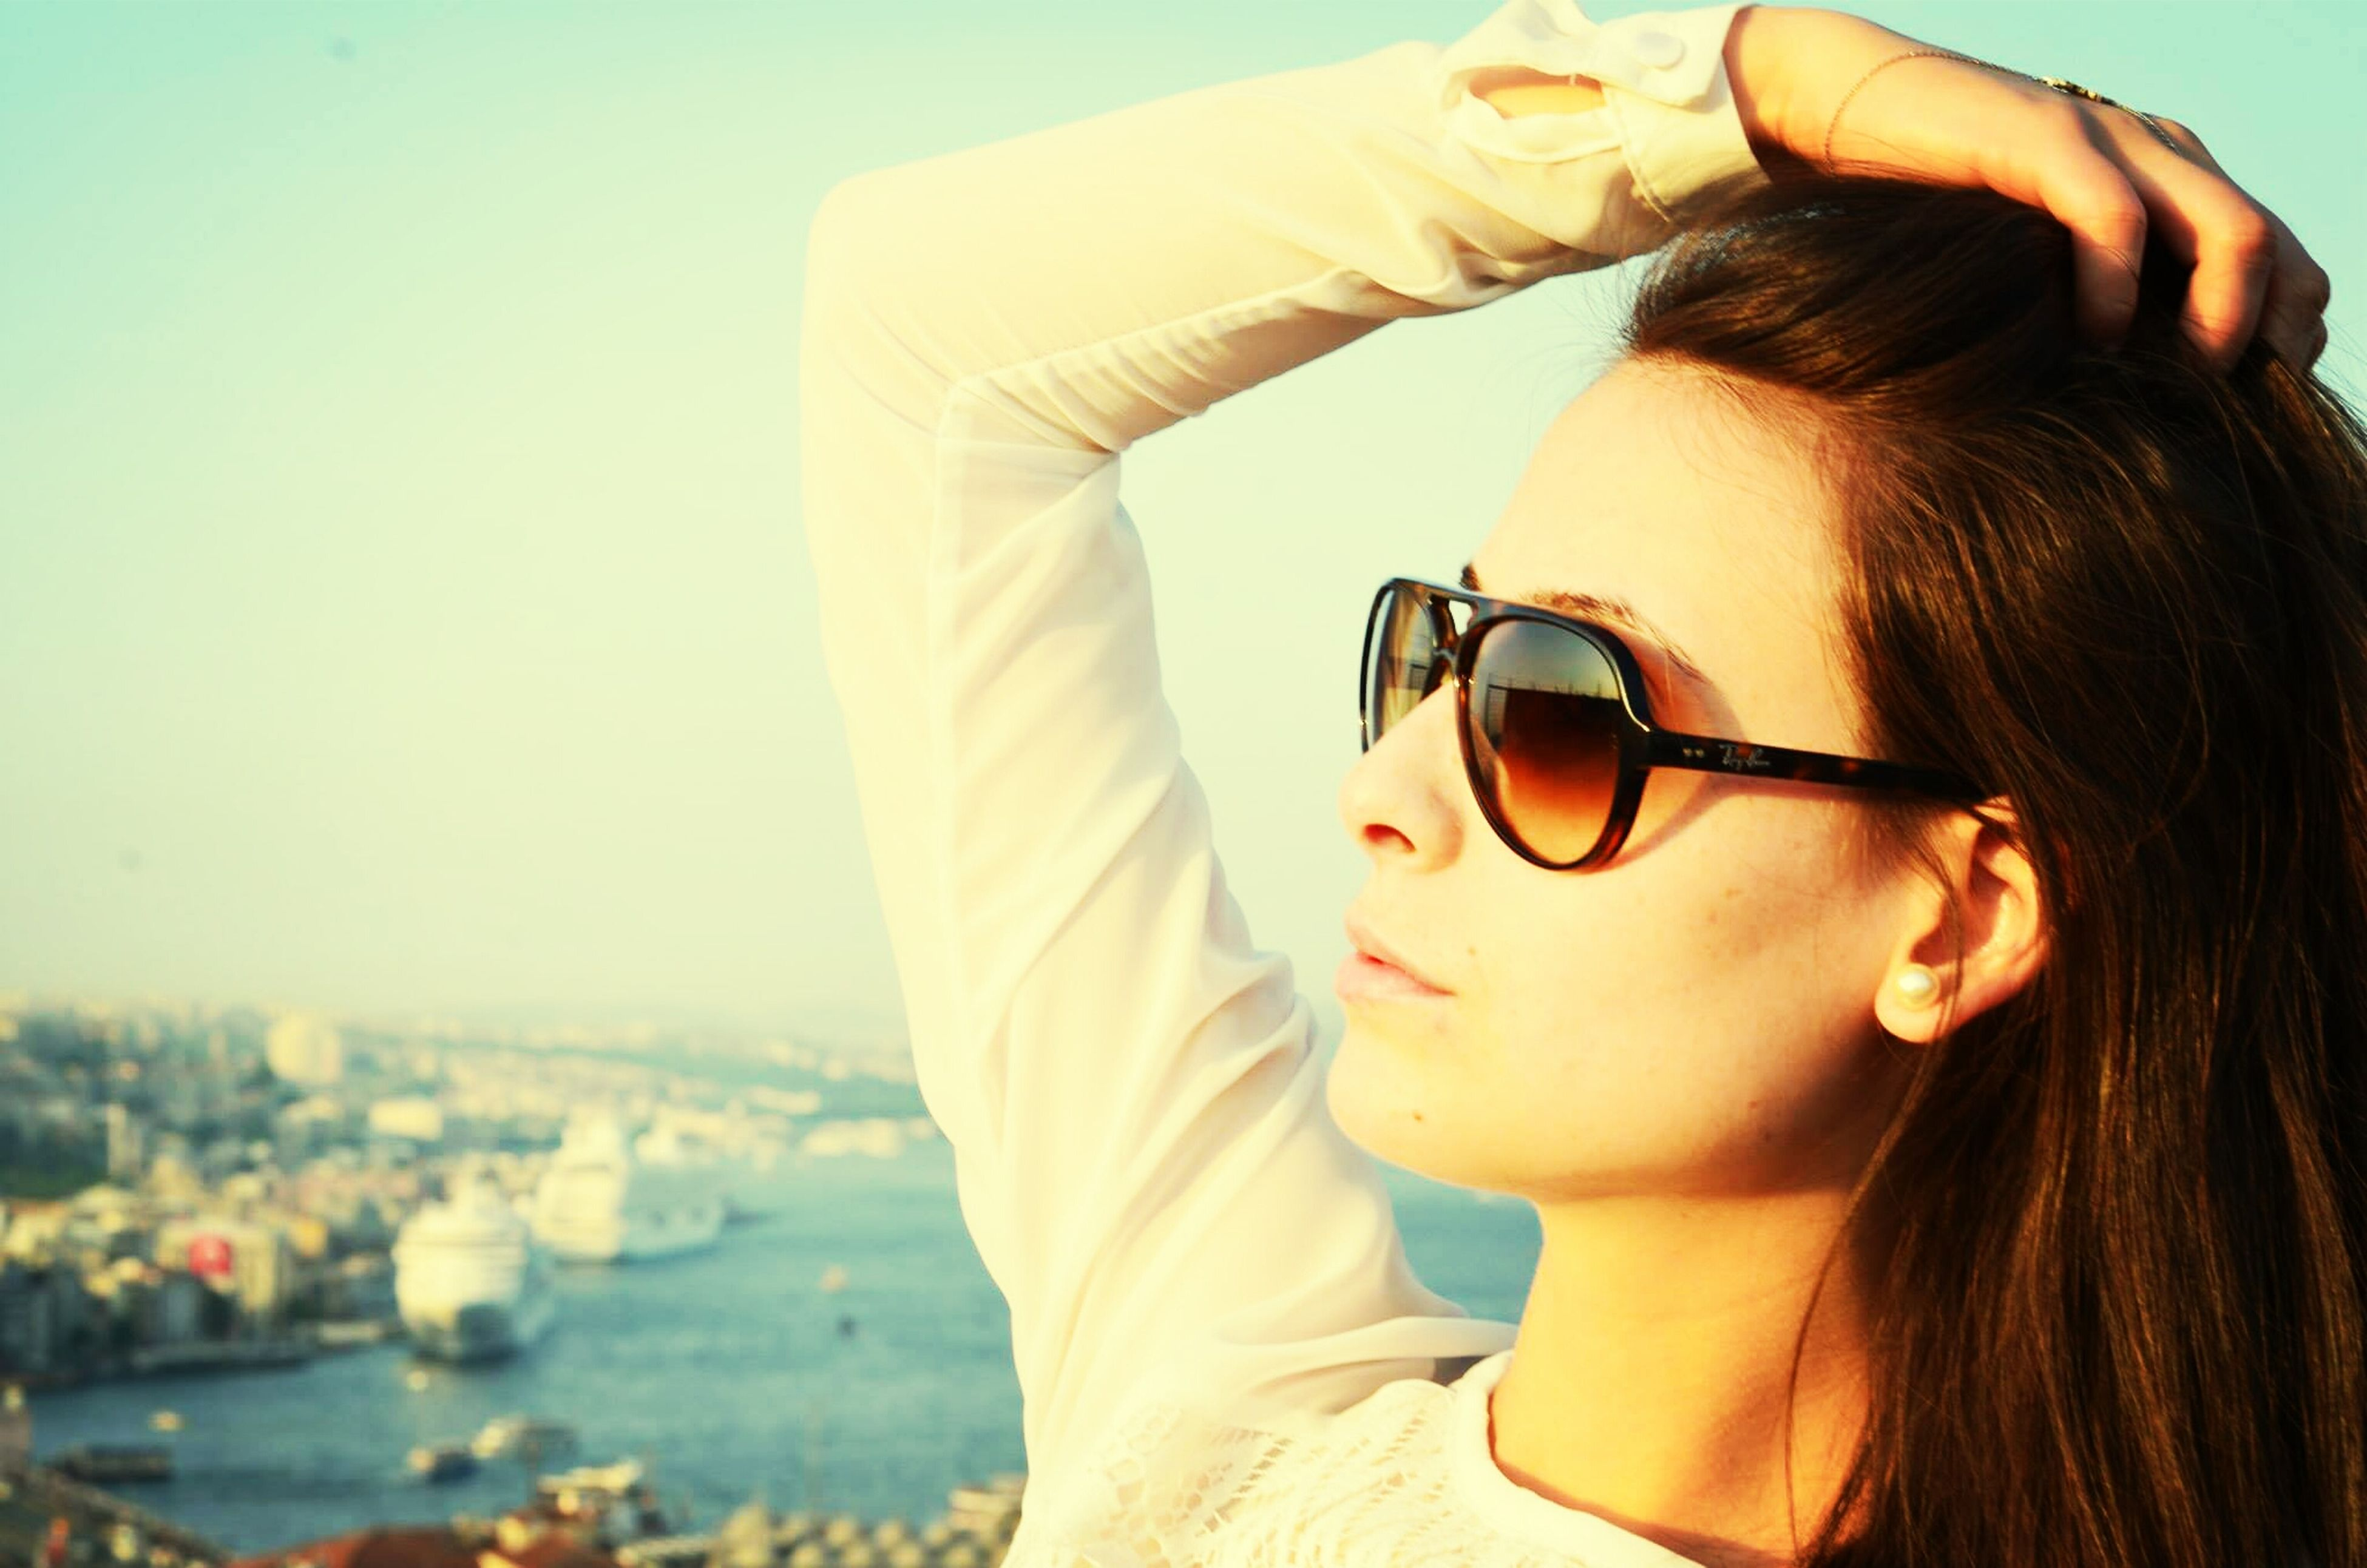 person, headshot, young adult, lifestyles, sunglasses, leisure activity, young women, focus on foreground, head and shoulders, looking at camera, portrait, close-up, human face, front view, smiling, water, holding, casual clothing